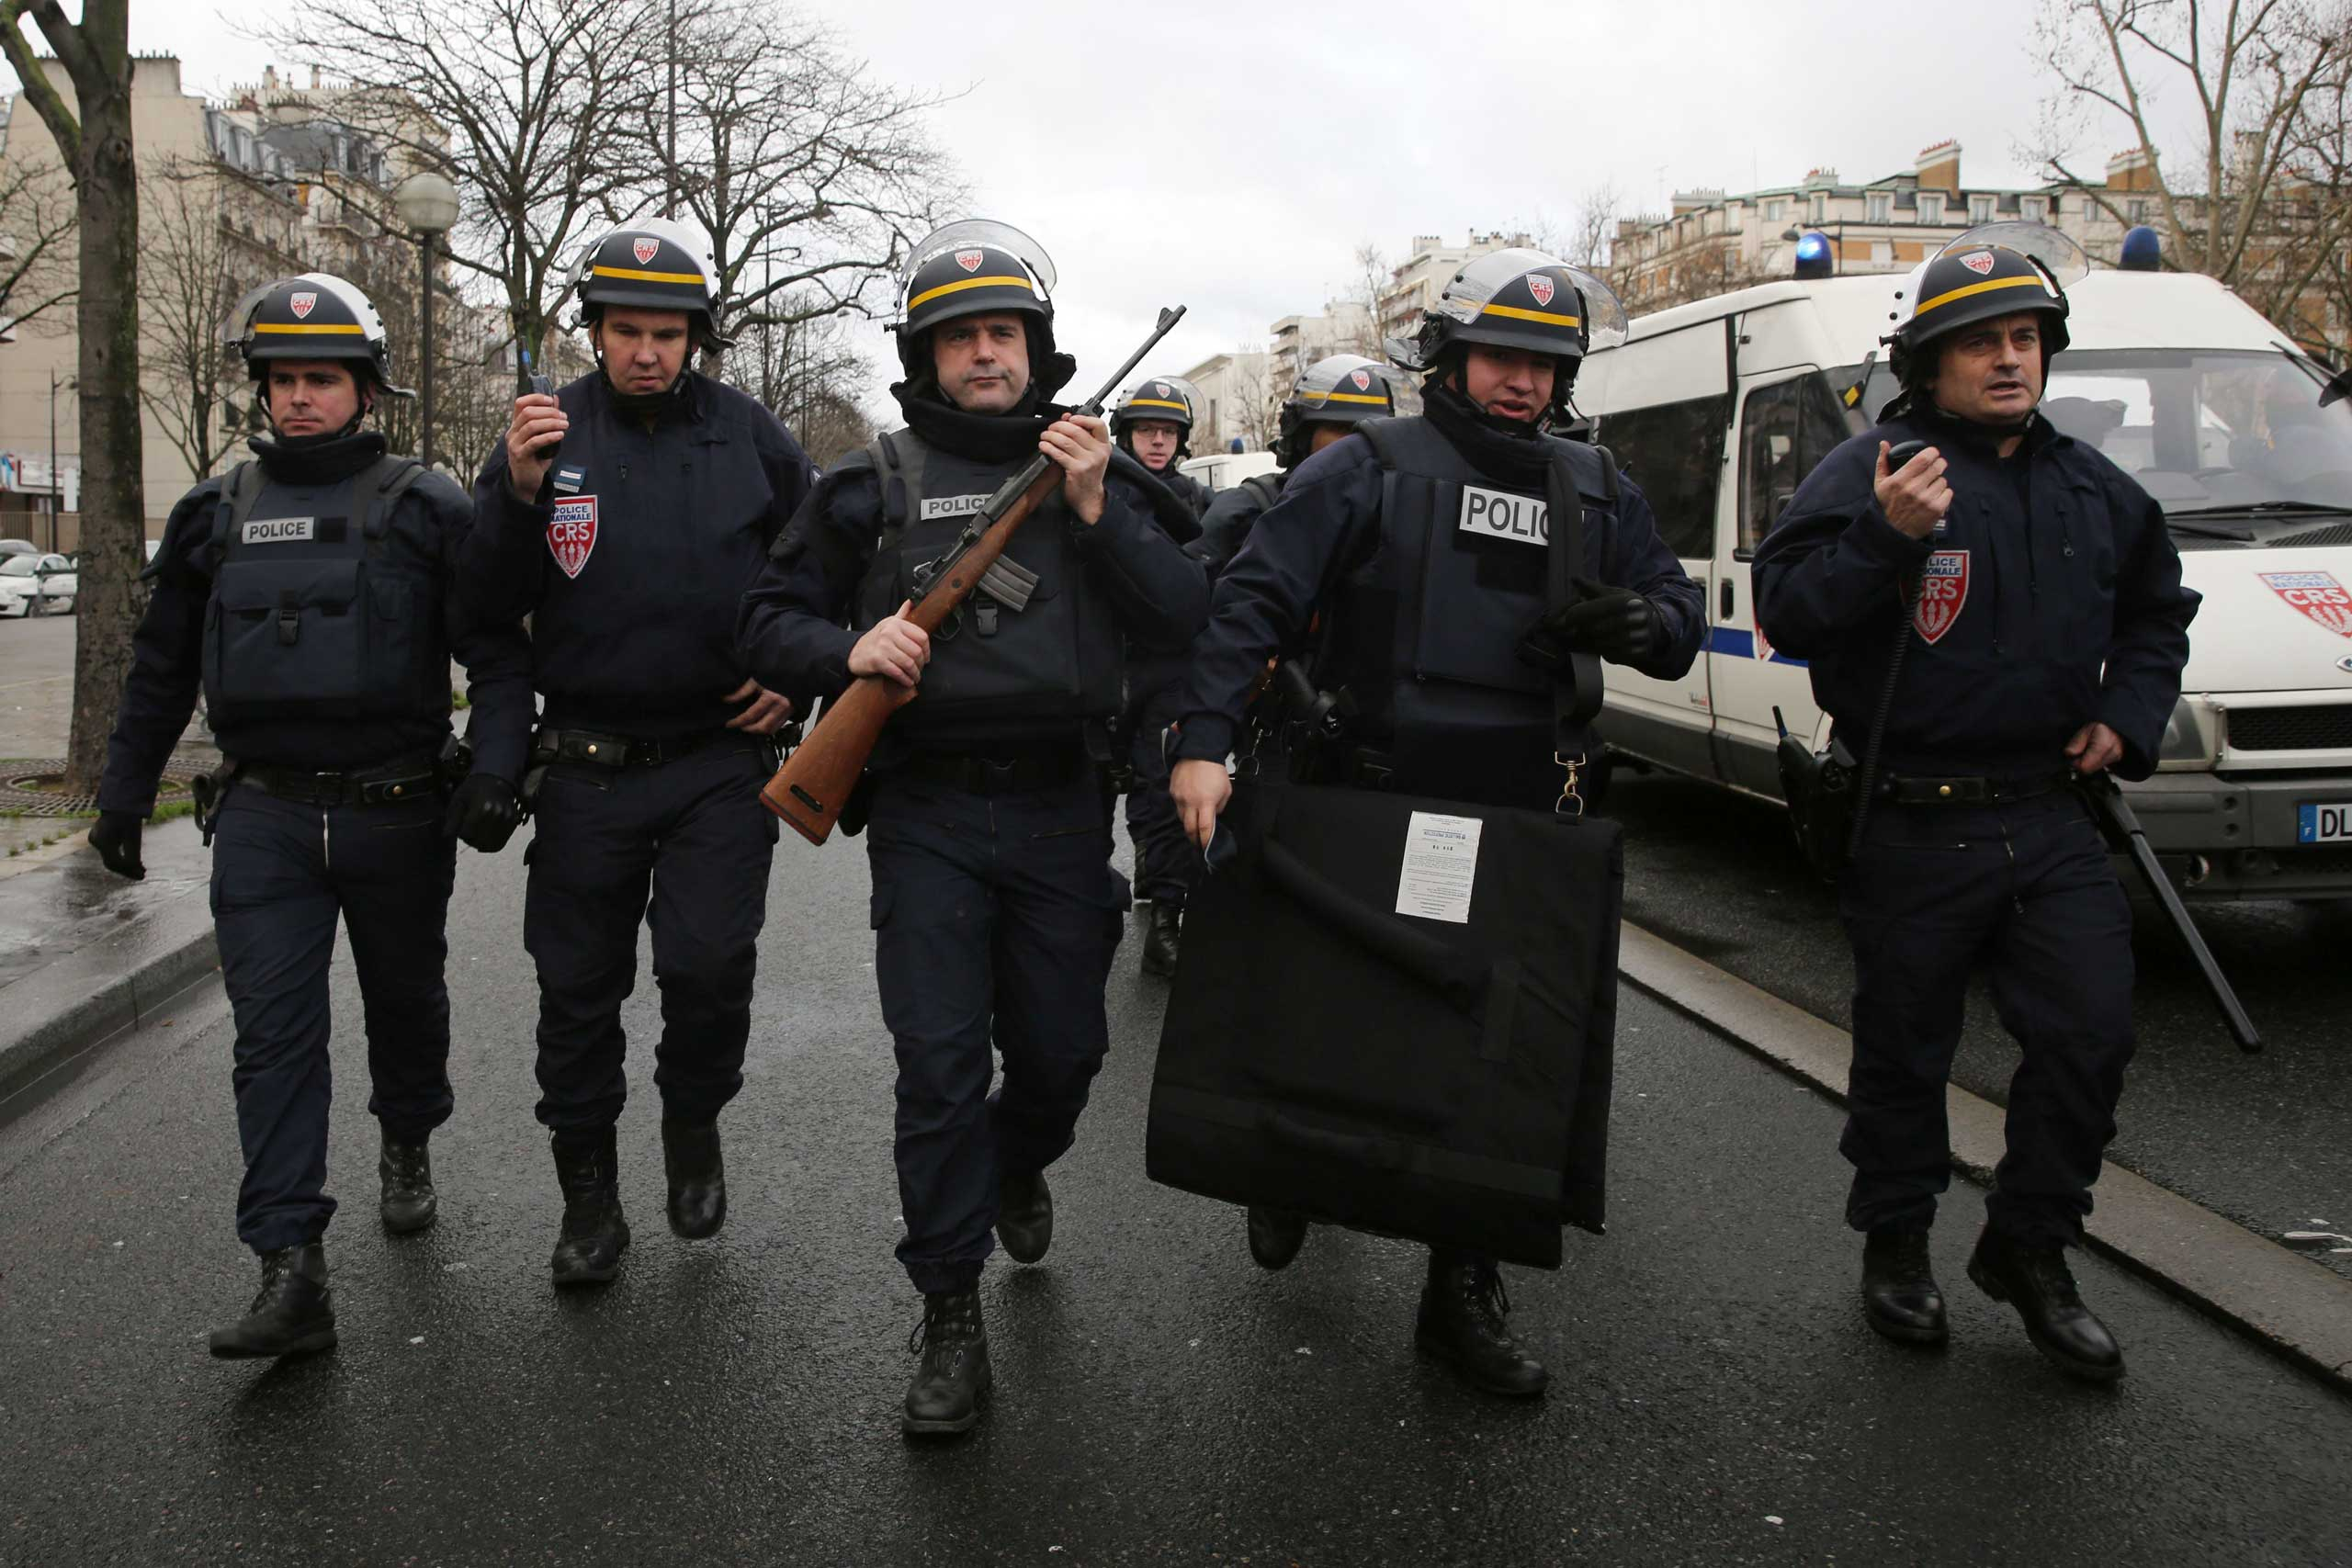 Police arrive with guns at Port de Vincennes on Jan. 9, 2015 in Paris.